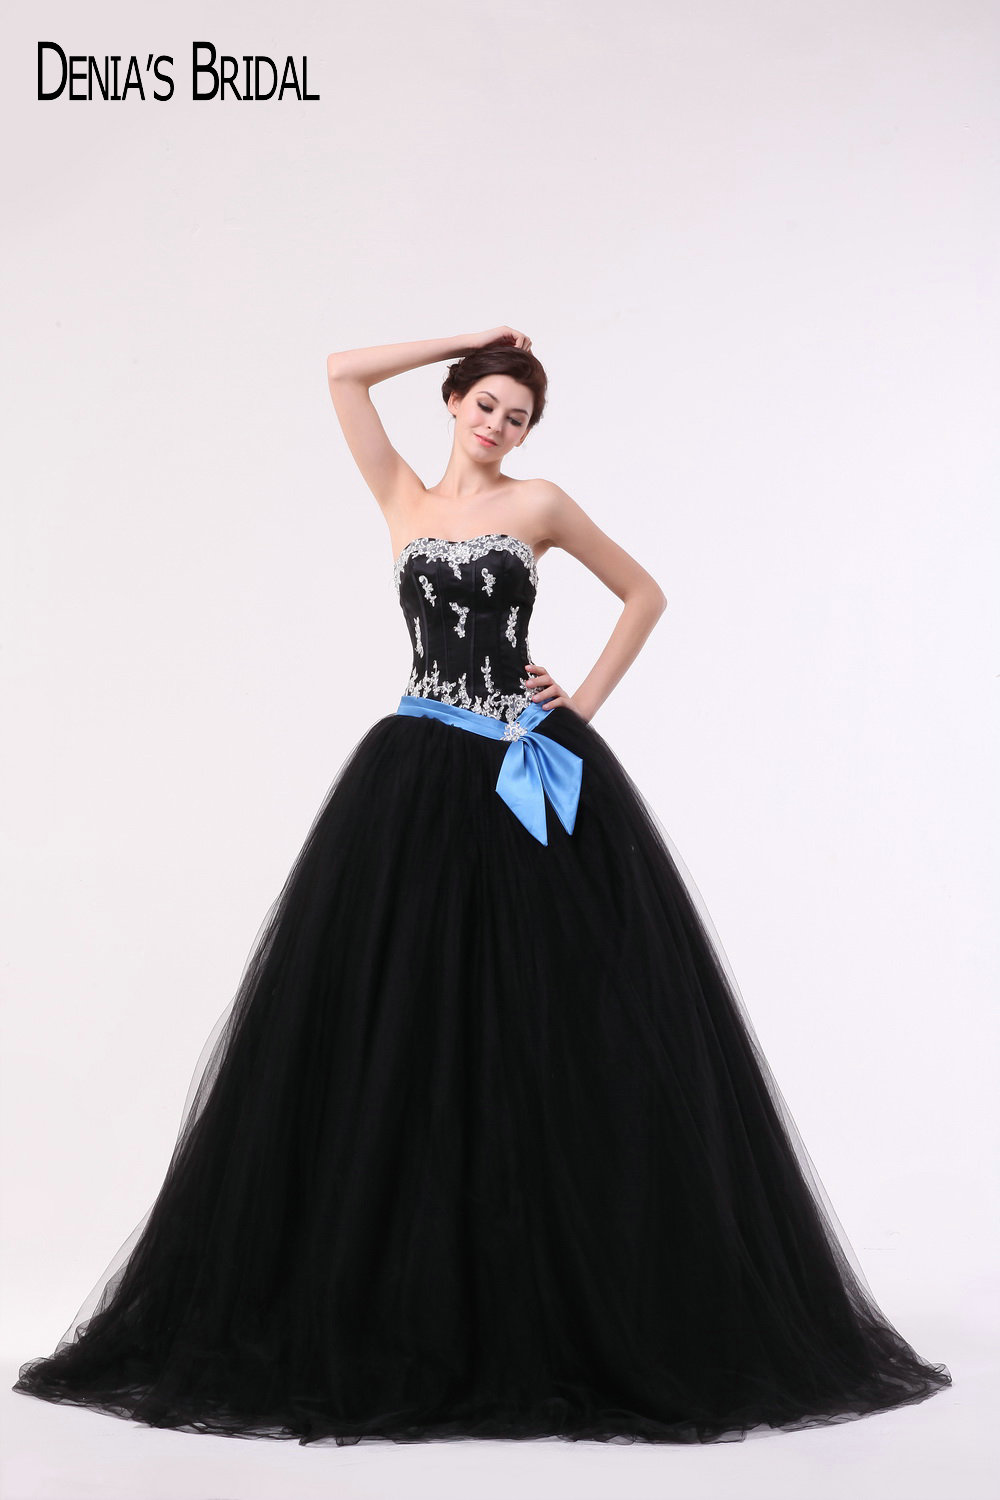 Compare Prices on Black Ball Gown- Online Shopping/Buy Low Price ...